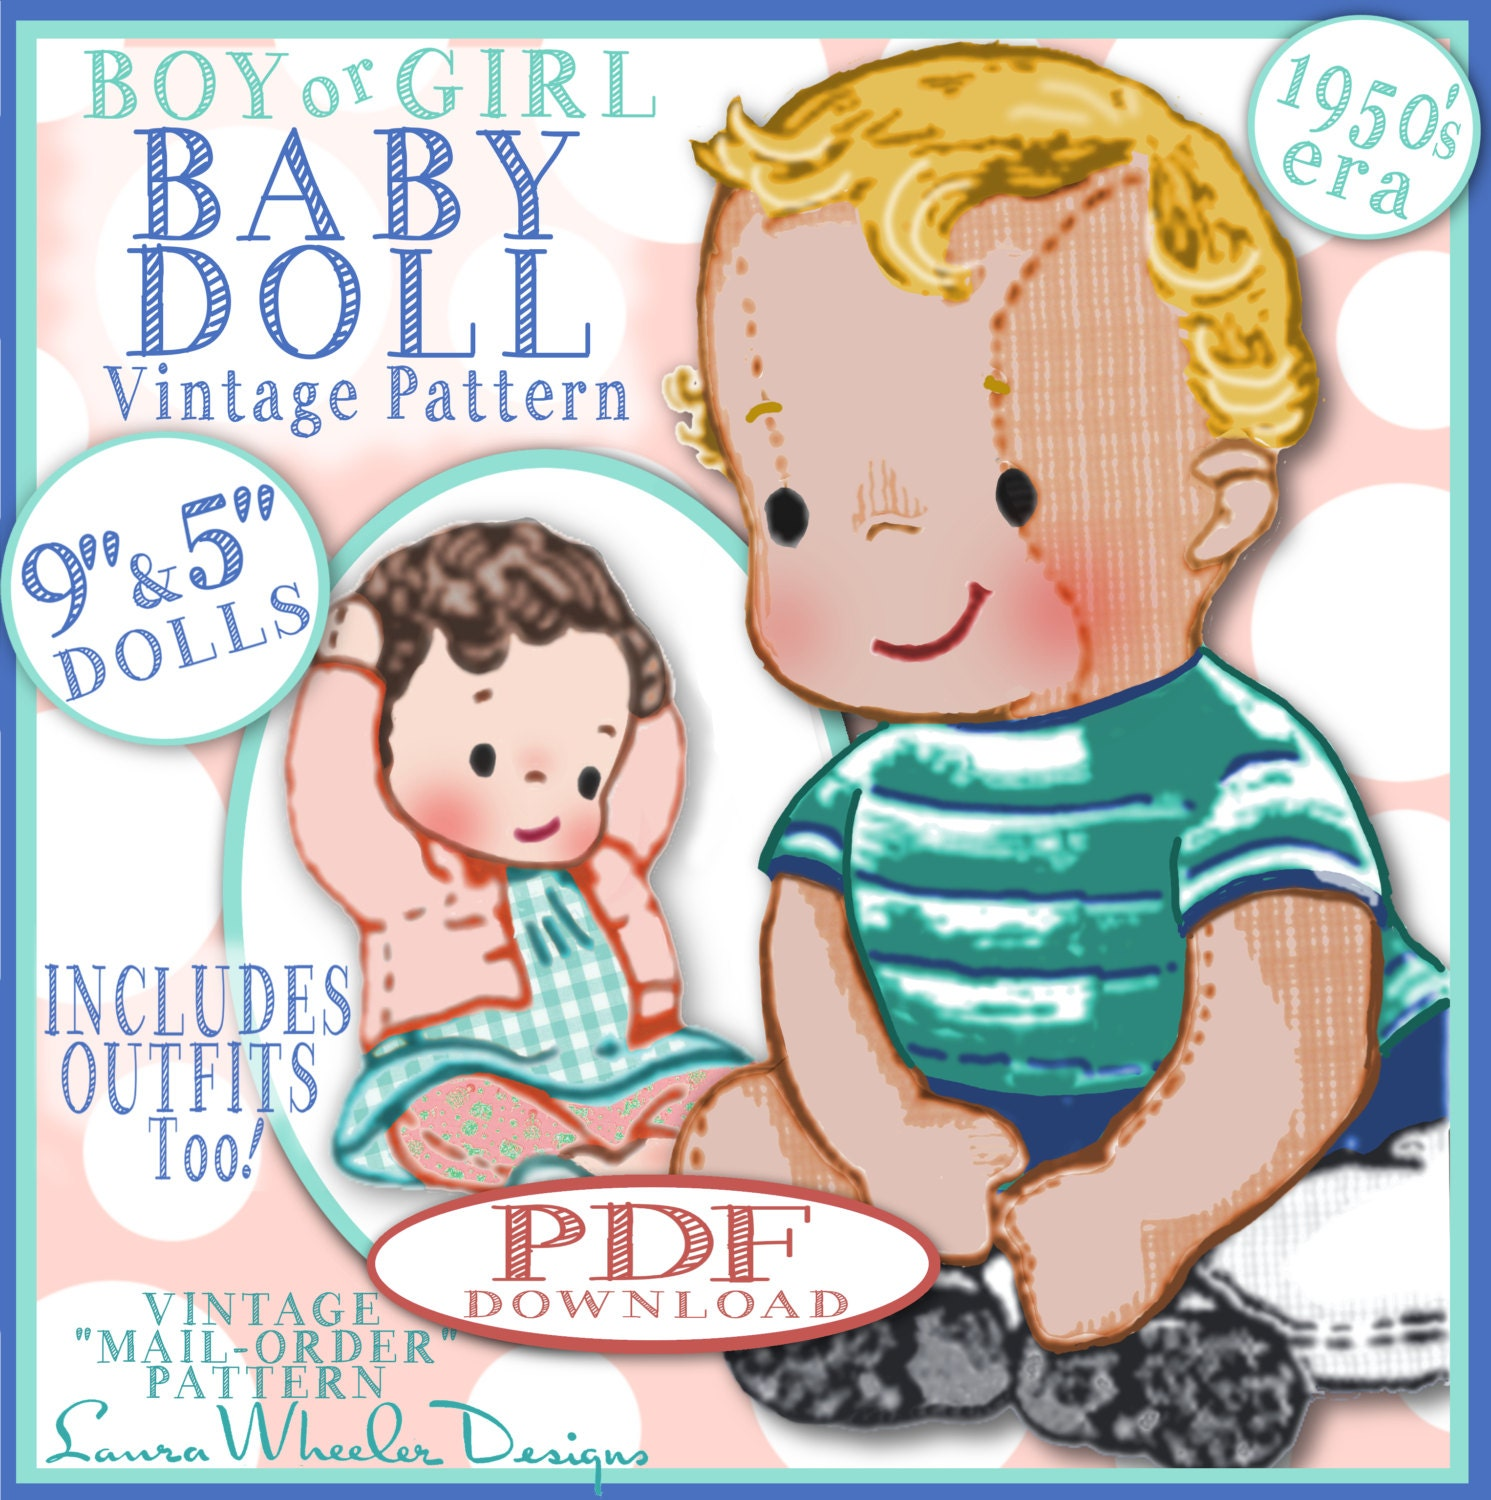 BOY Baby Doll Vintage Pattern 1950s Mail Order ePattern Boy or Girl